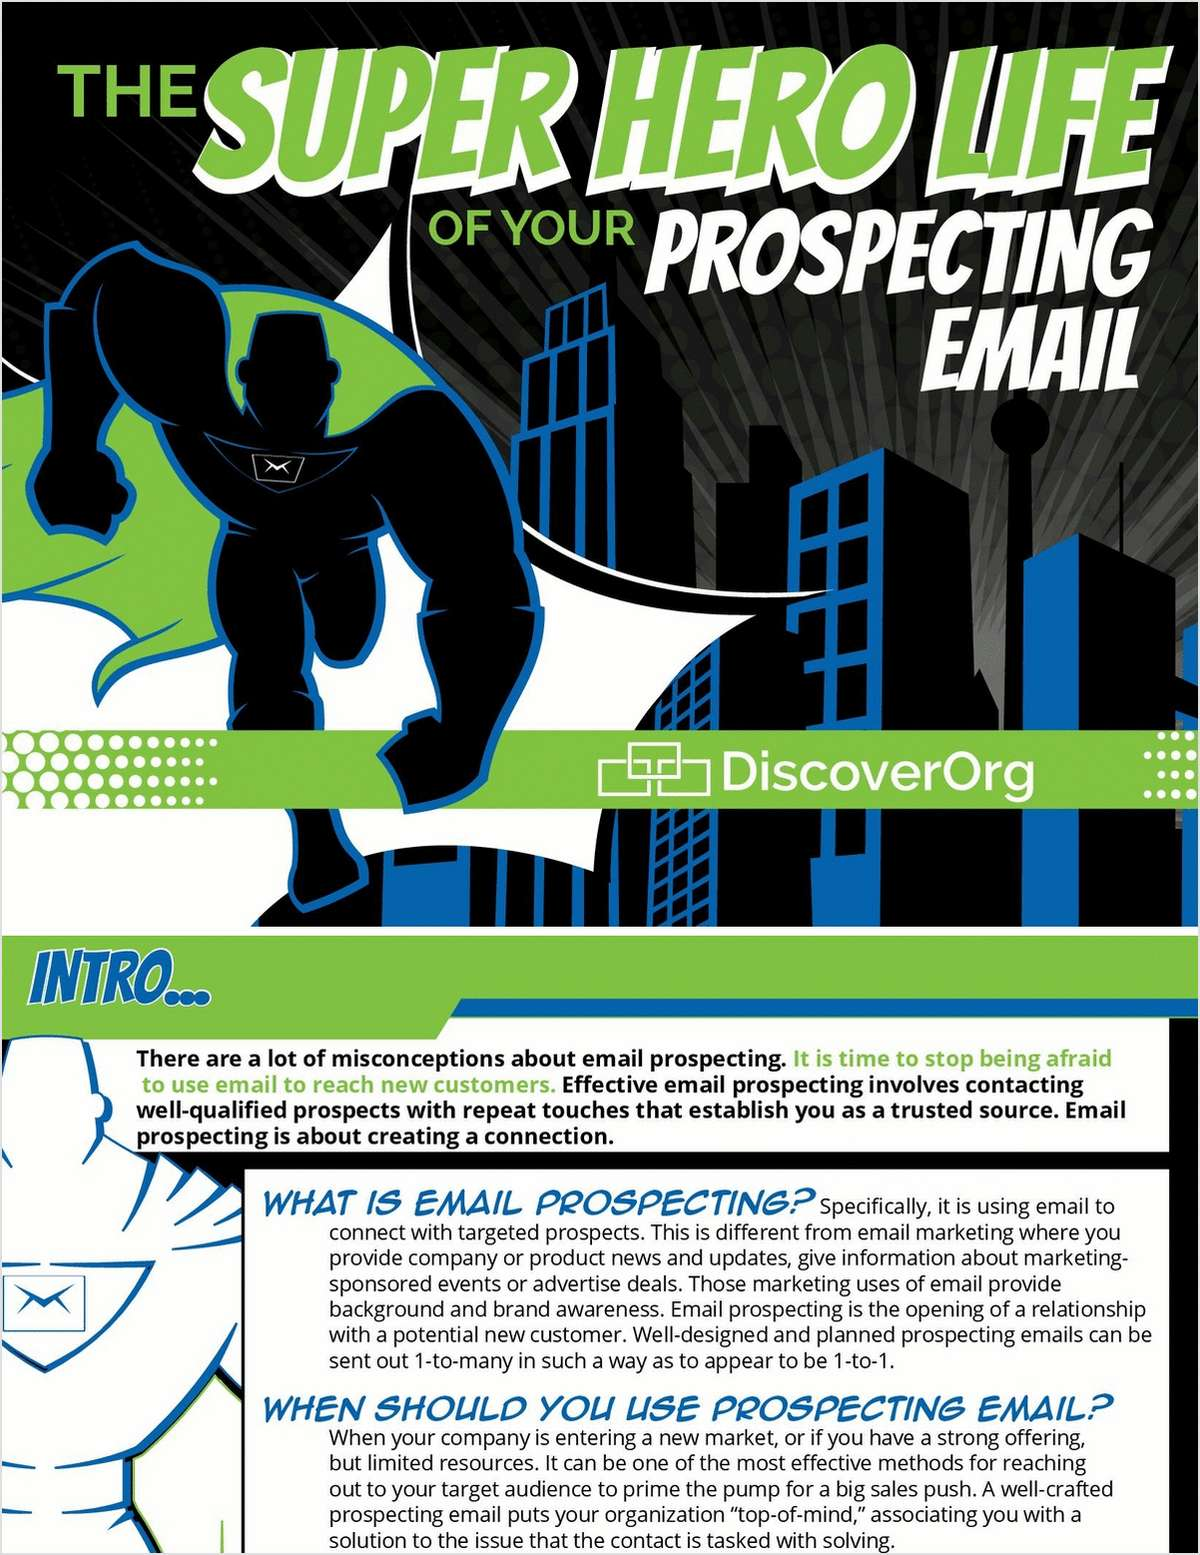 The Superhero Life of Your Prospecting Email